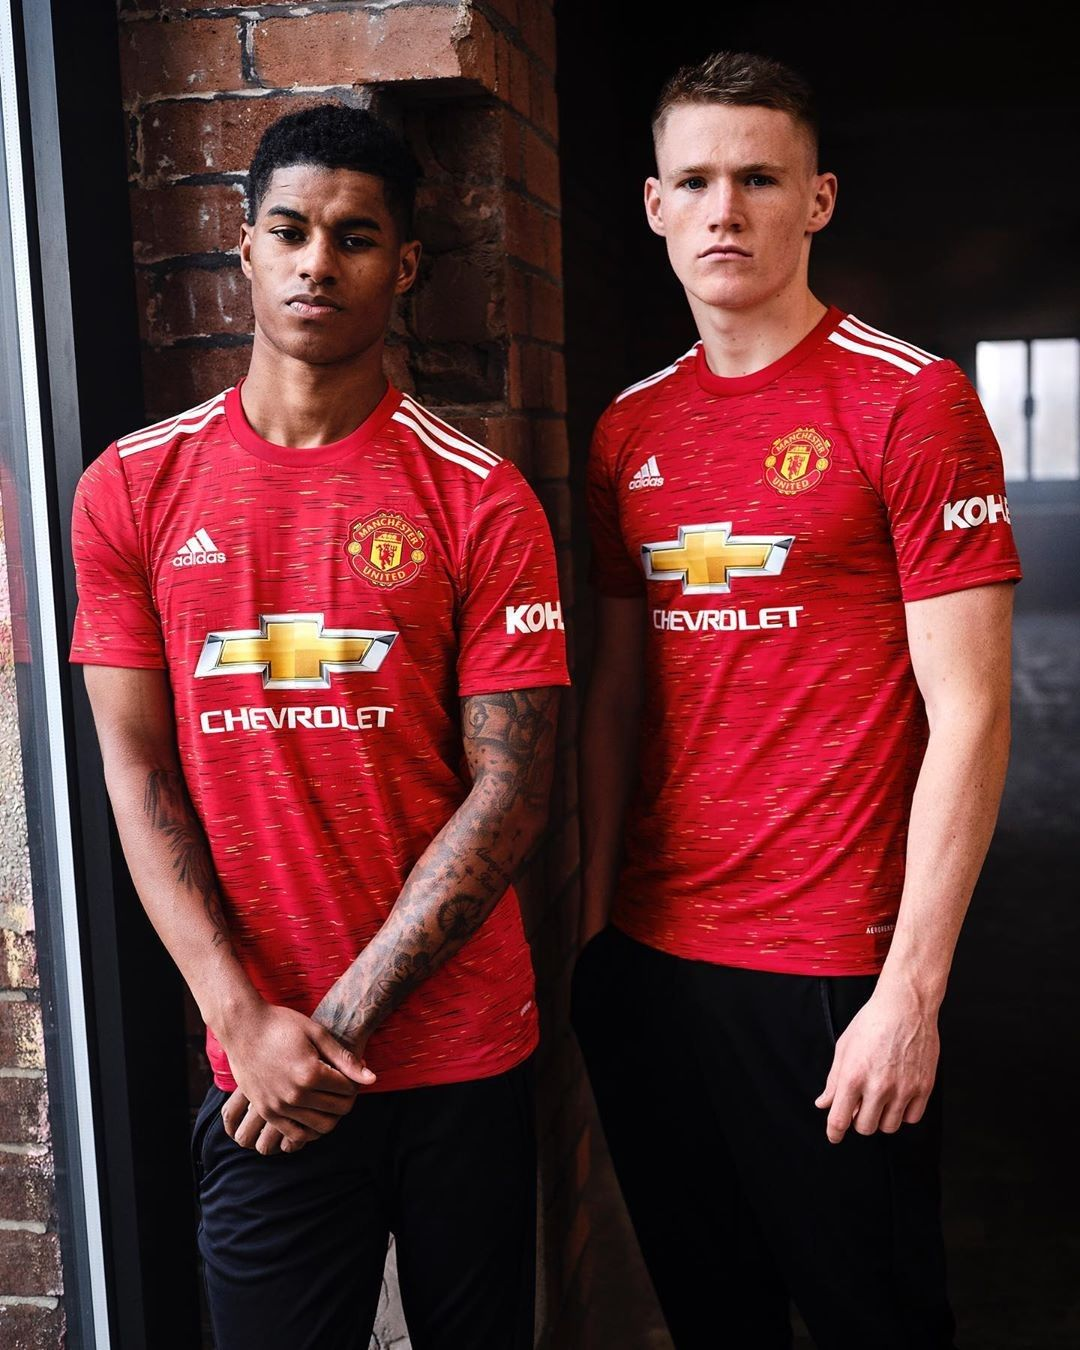 Man Utd 2020 21 Home Jersey In 2020 Manchester United Manchester United Soccer The Unit